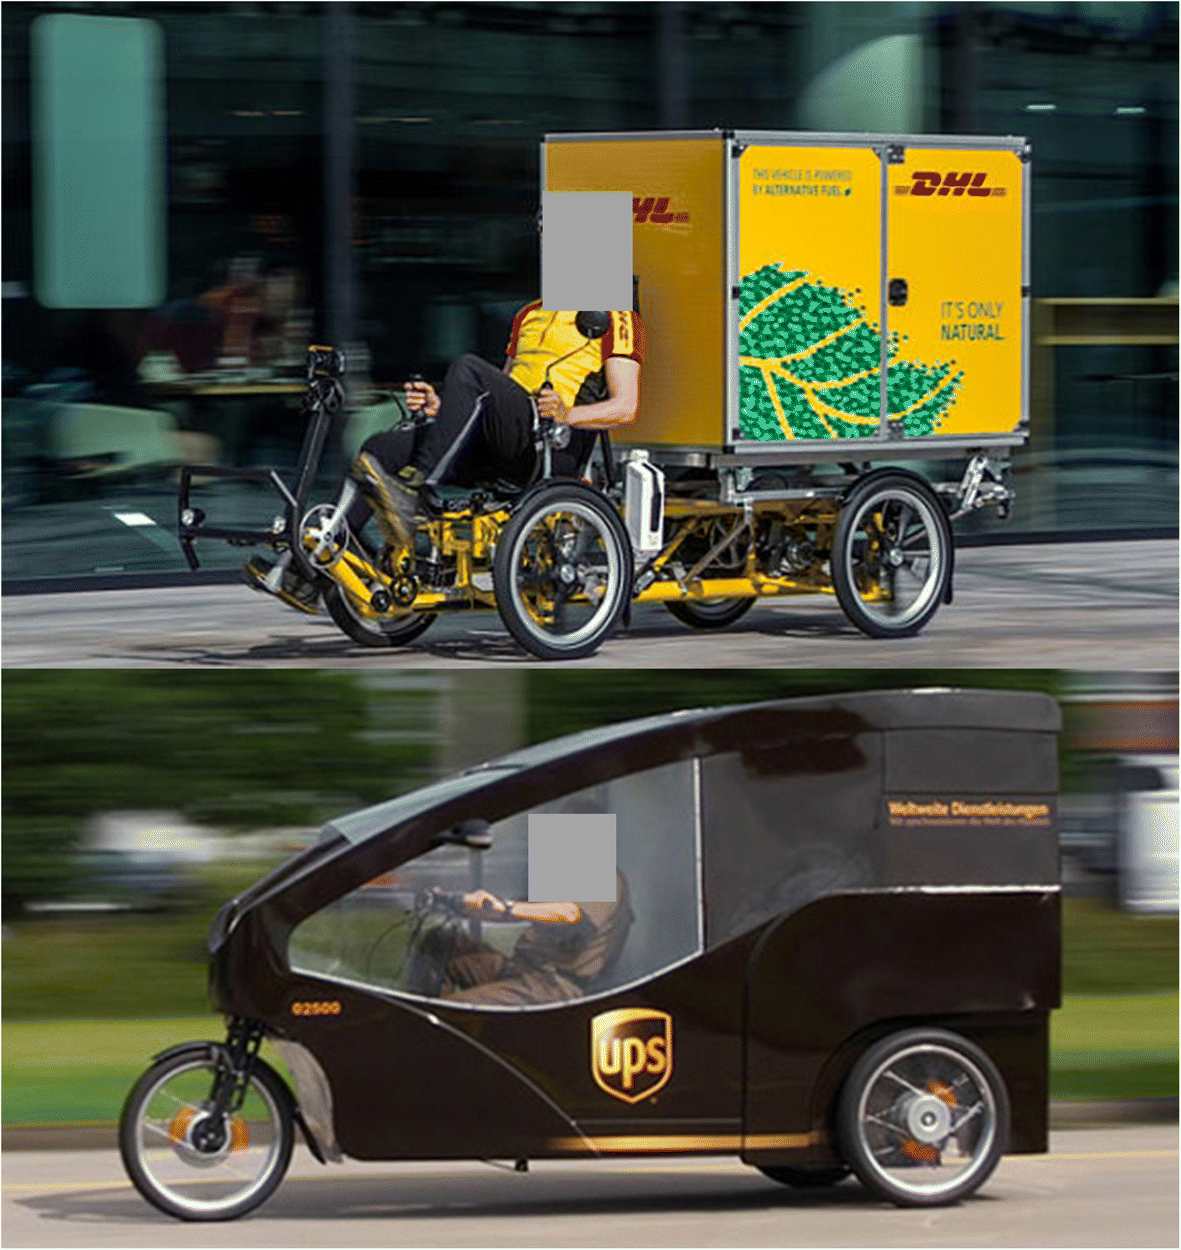 Measuring delivery route cost trade-offs between electric